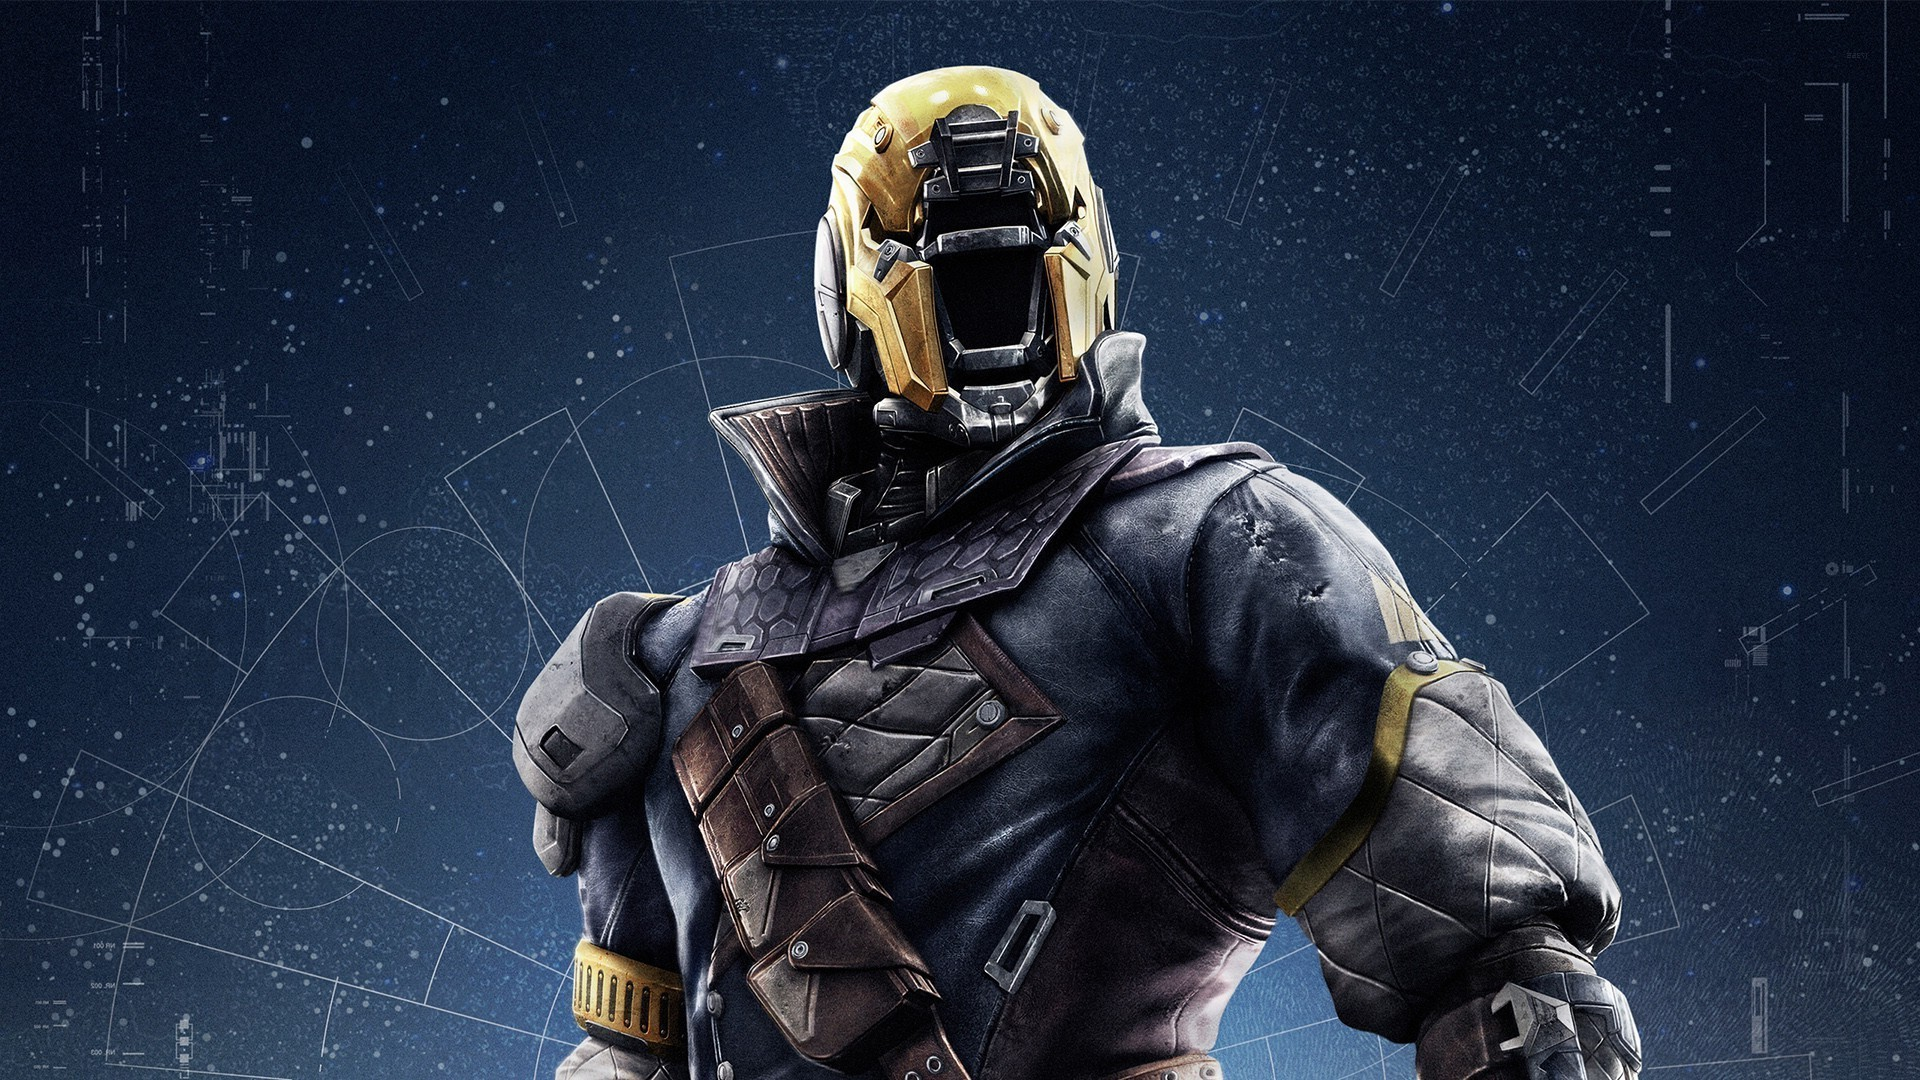 Res: 1920x1080, HD Images Collection of Destiny HD: by Jorge Ahlers for PC & Mac, Laptop,  Tablet, Mobile Phone